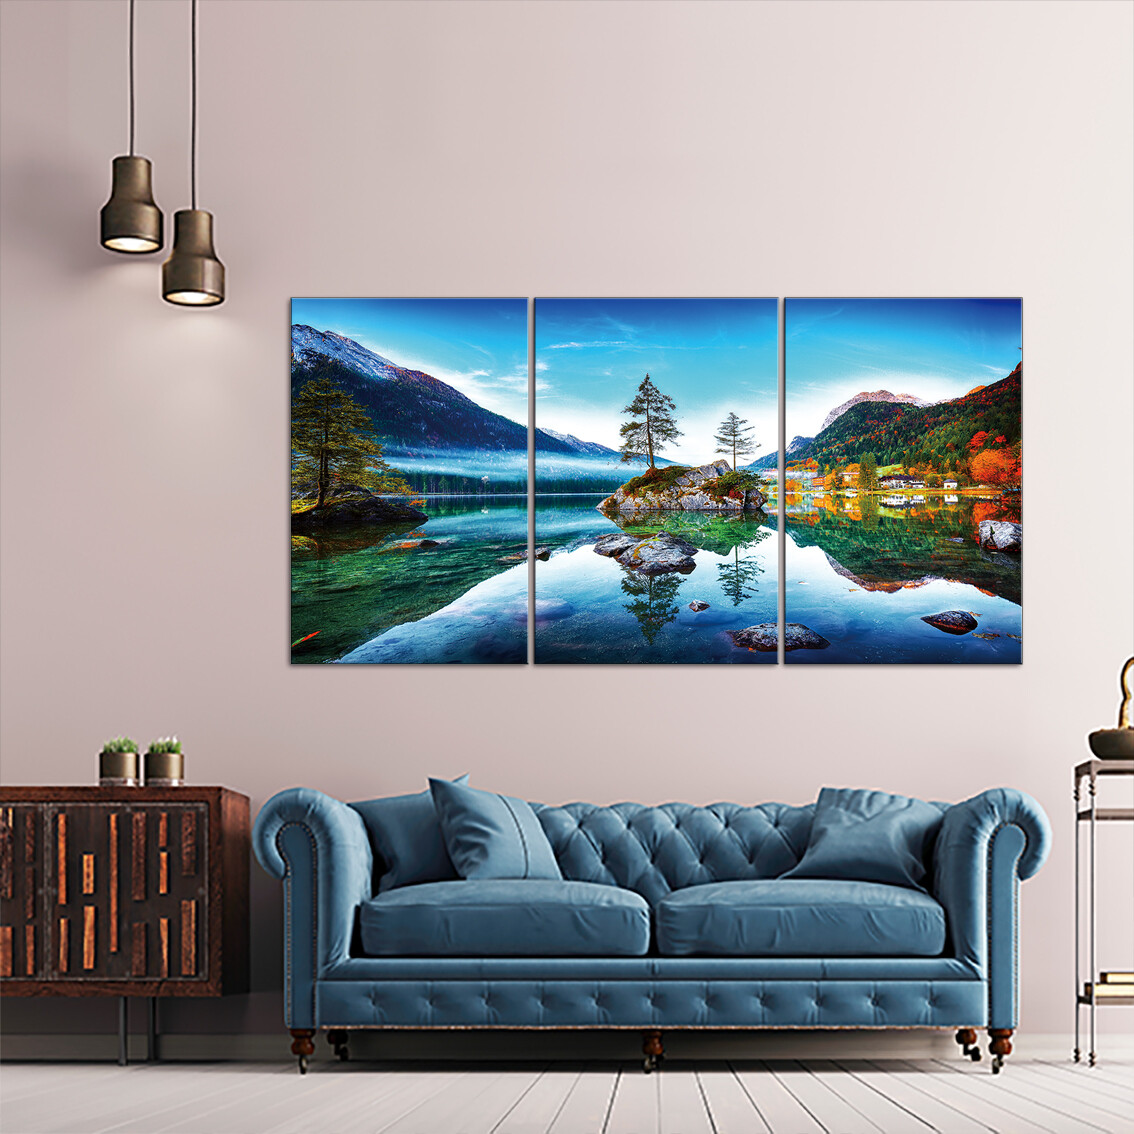 Hintersee Lake Austria (3 Panels Large)